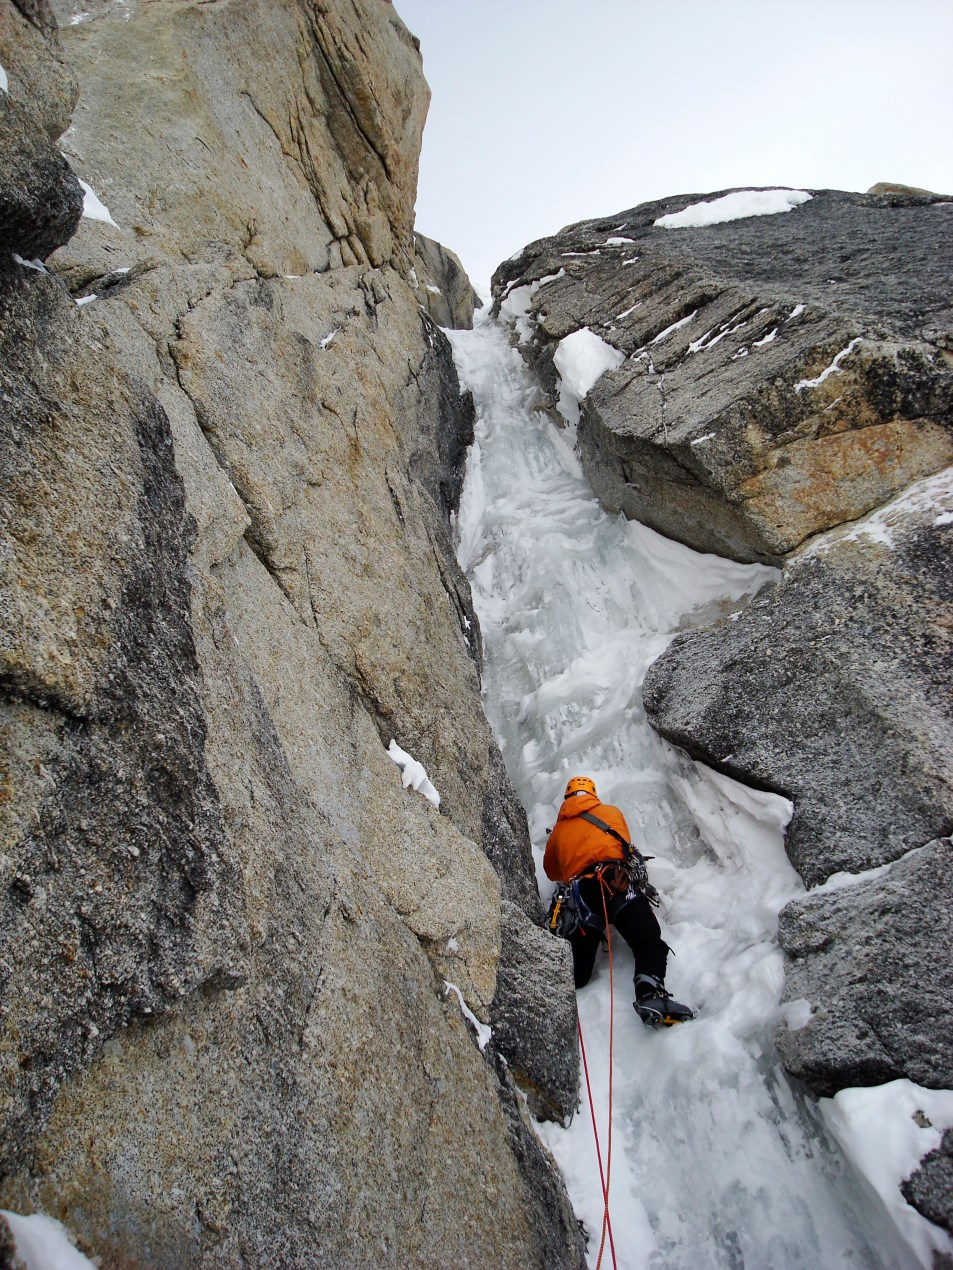 Eamonn Walsh leads the third pitch of The Shaft on Mount Hunter's Moonflower Buttress. May 2007 (Photo: Mark Westman)